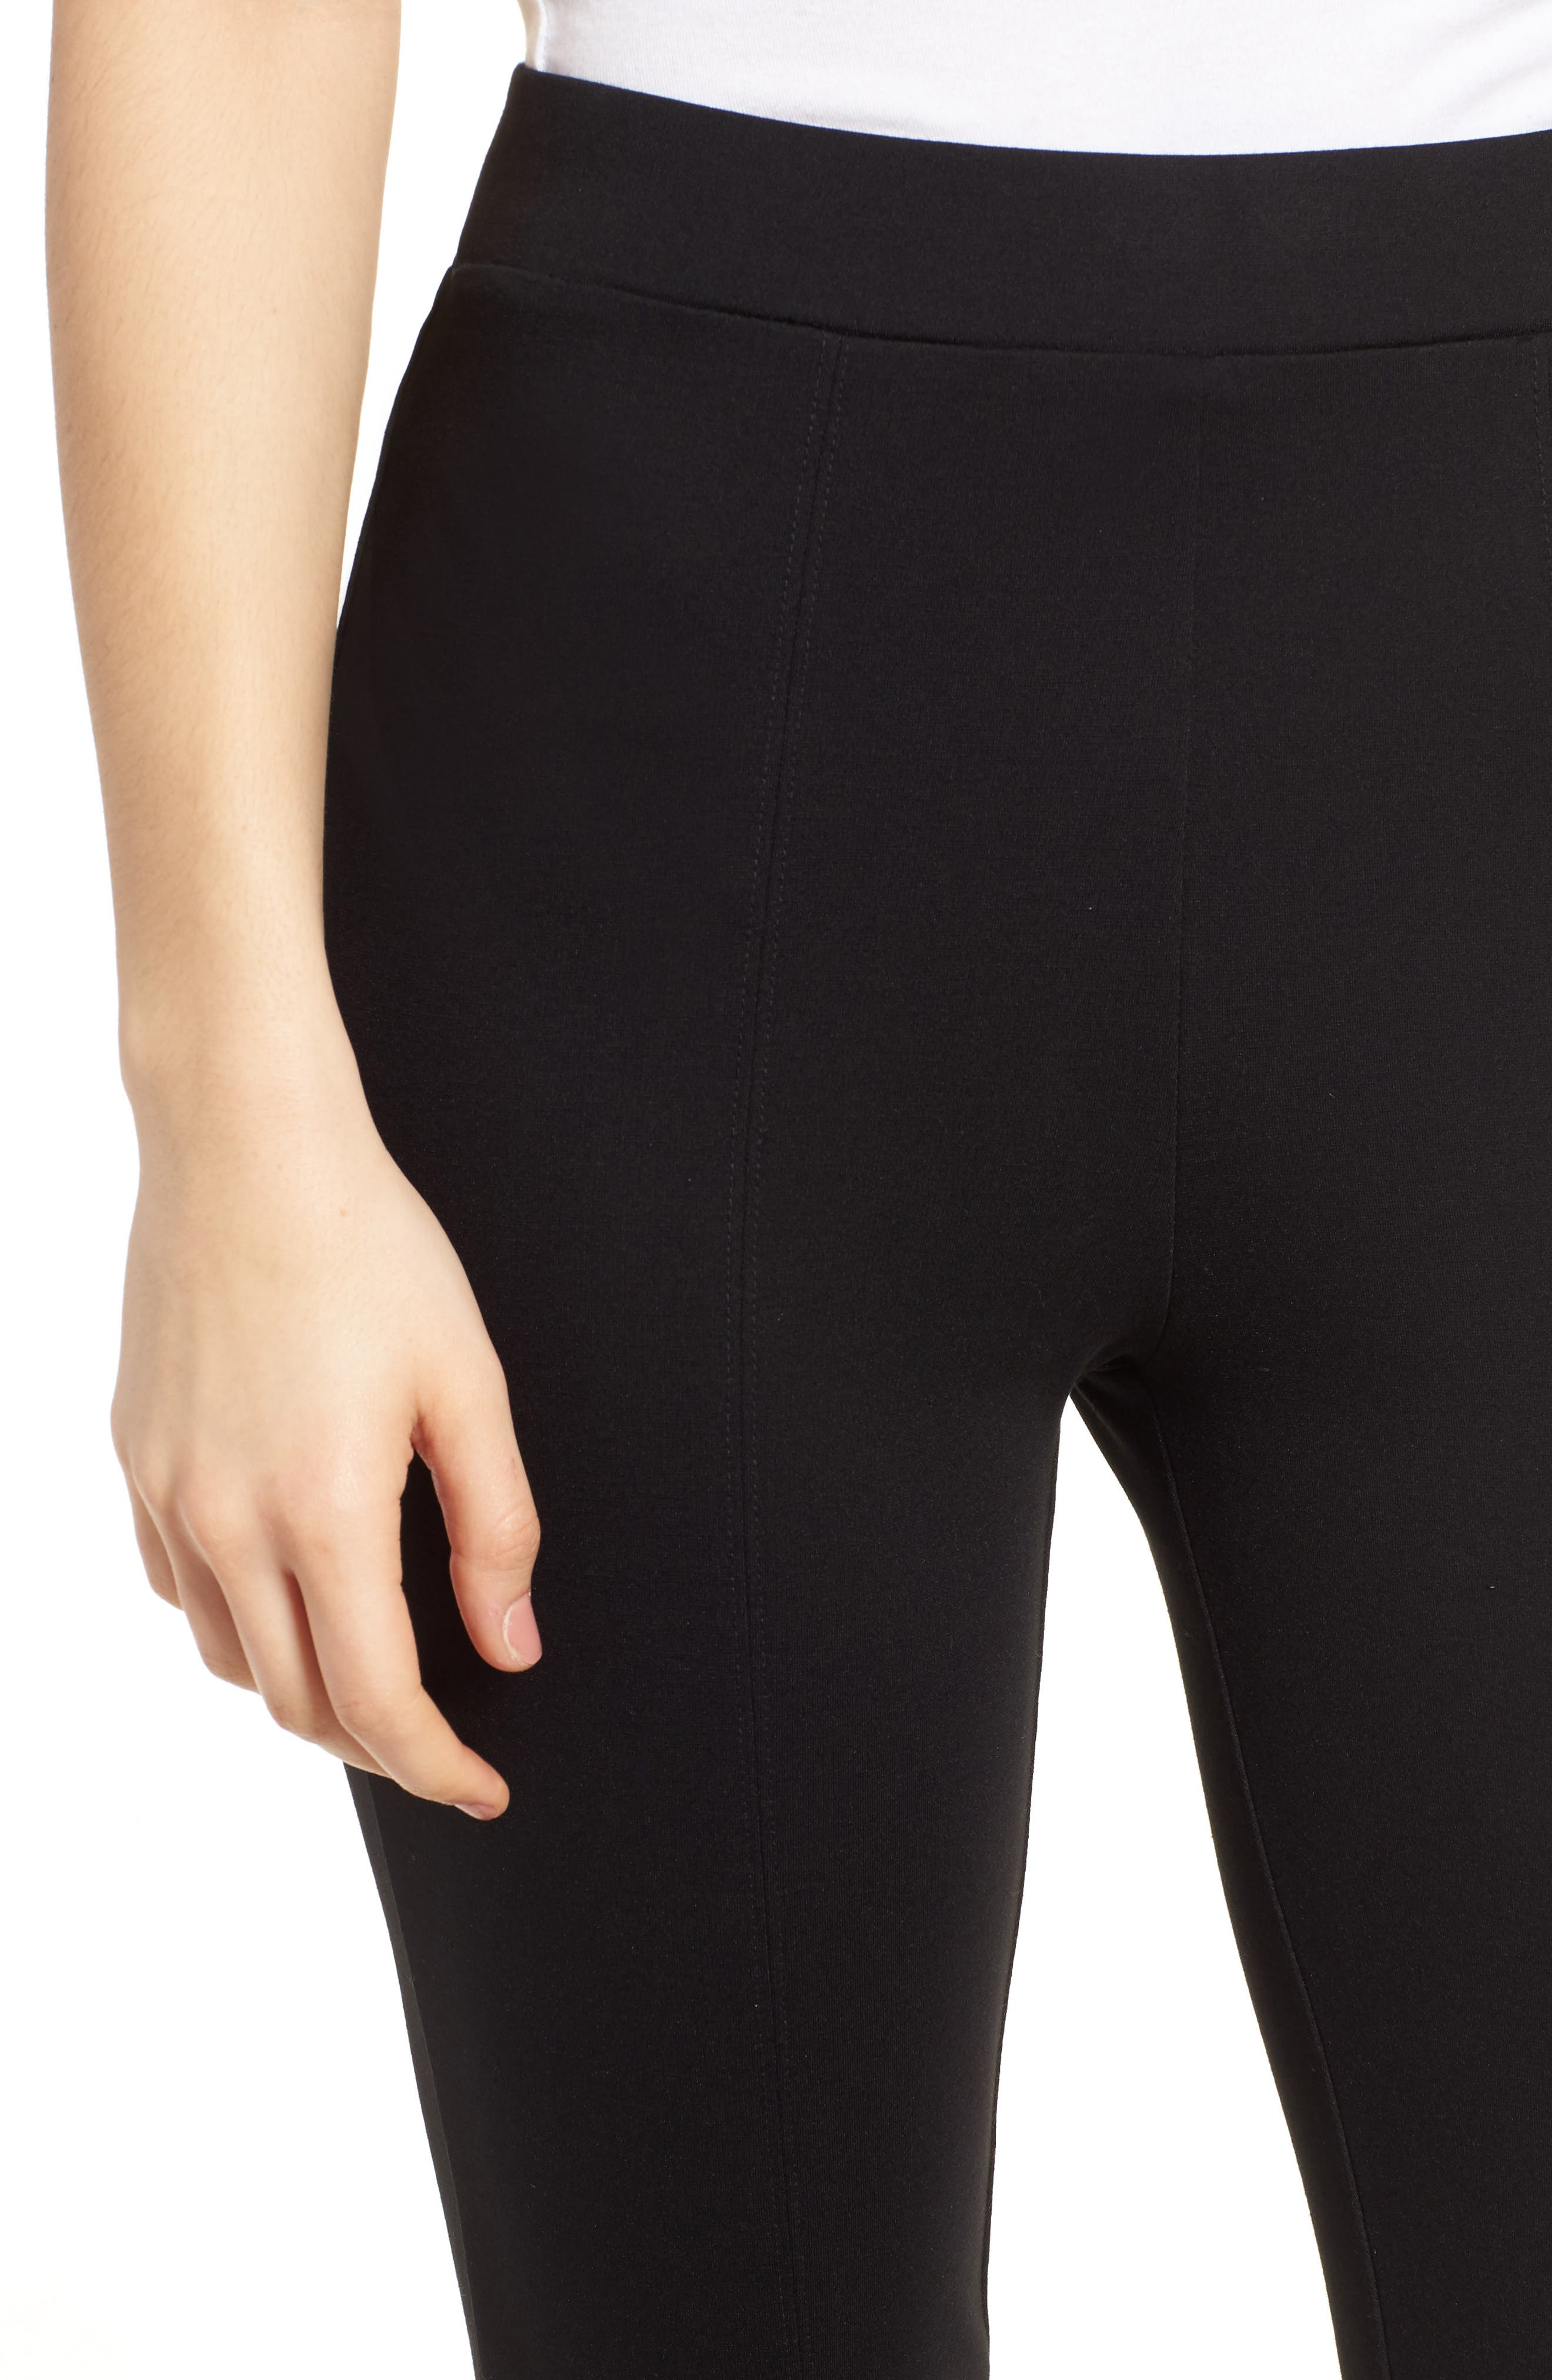 Macklin Ponte Leggings,                             Alternate thumbnail 4, color,                             Black